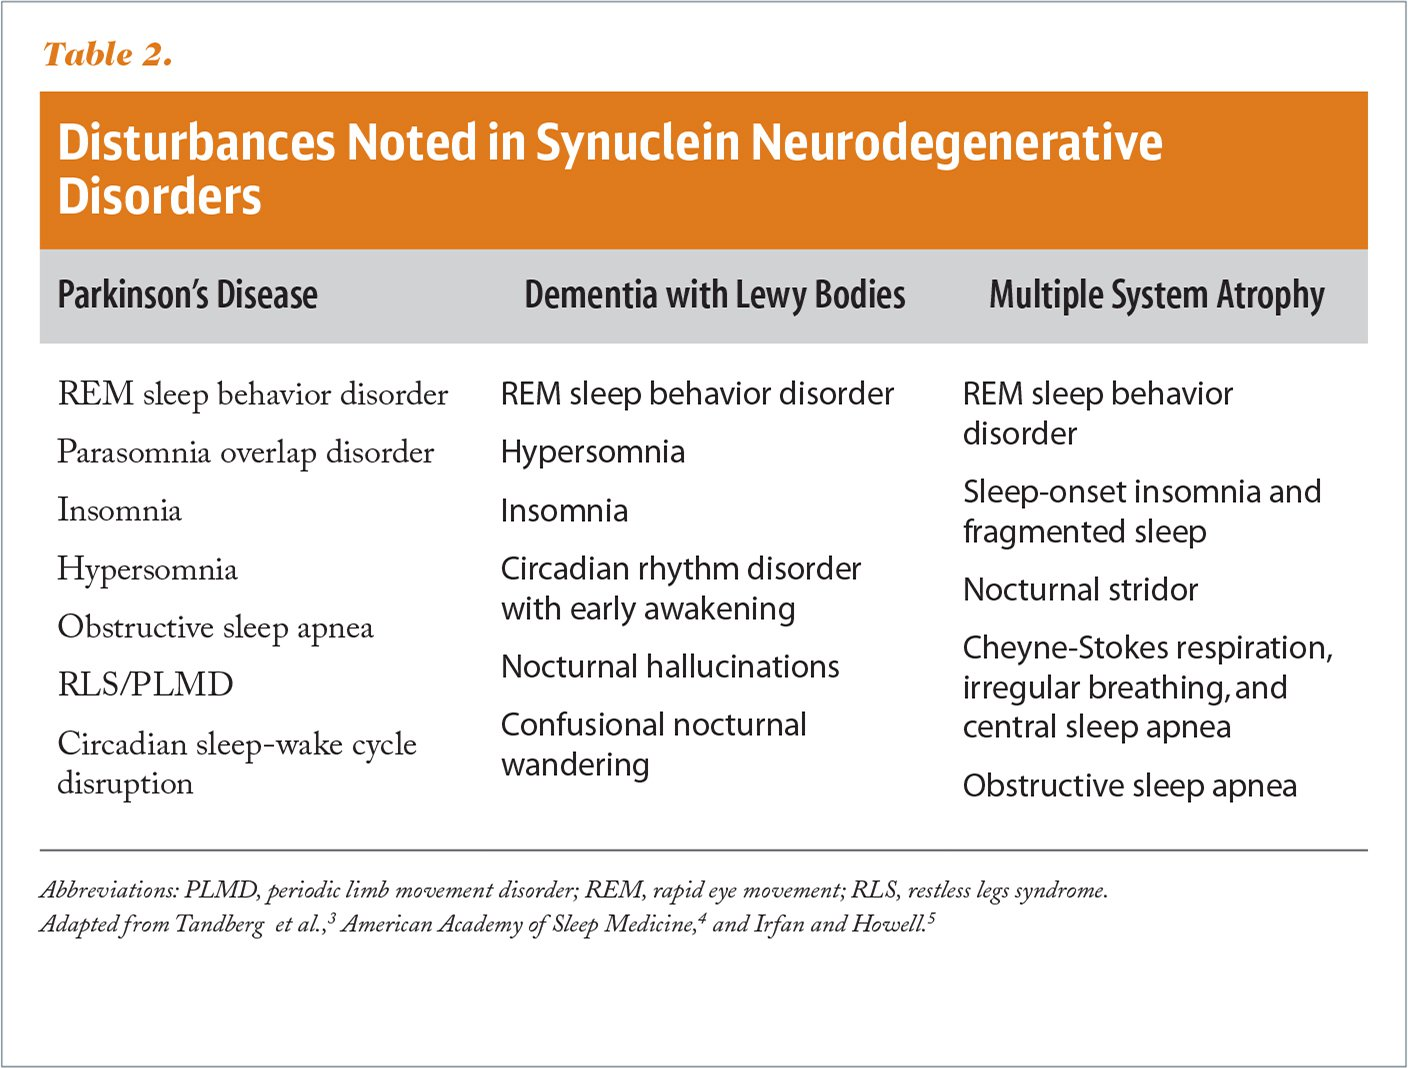 Disturbances Noted in Synuclein Neurodegenerative Disorders